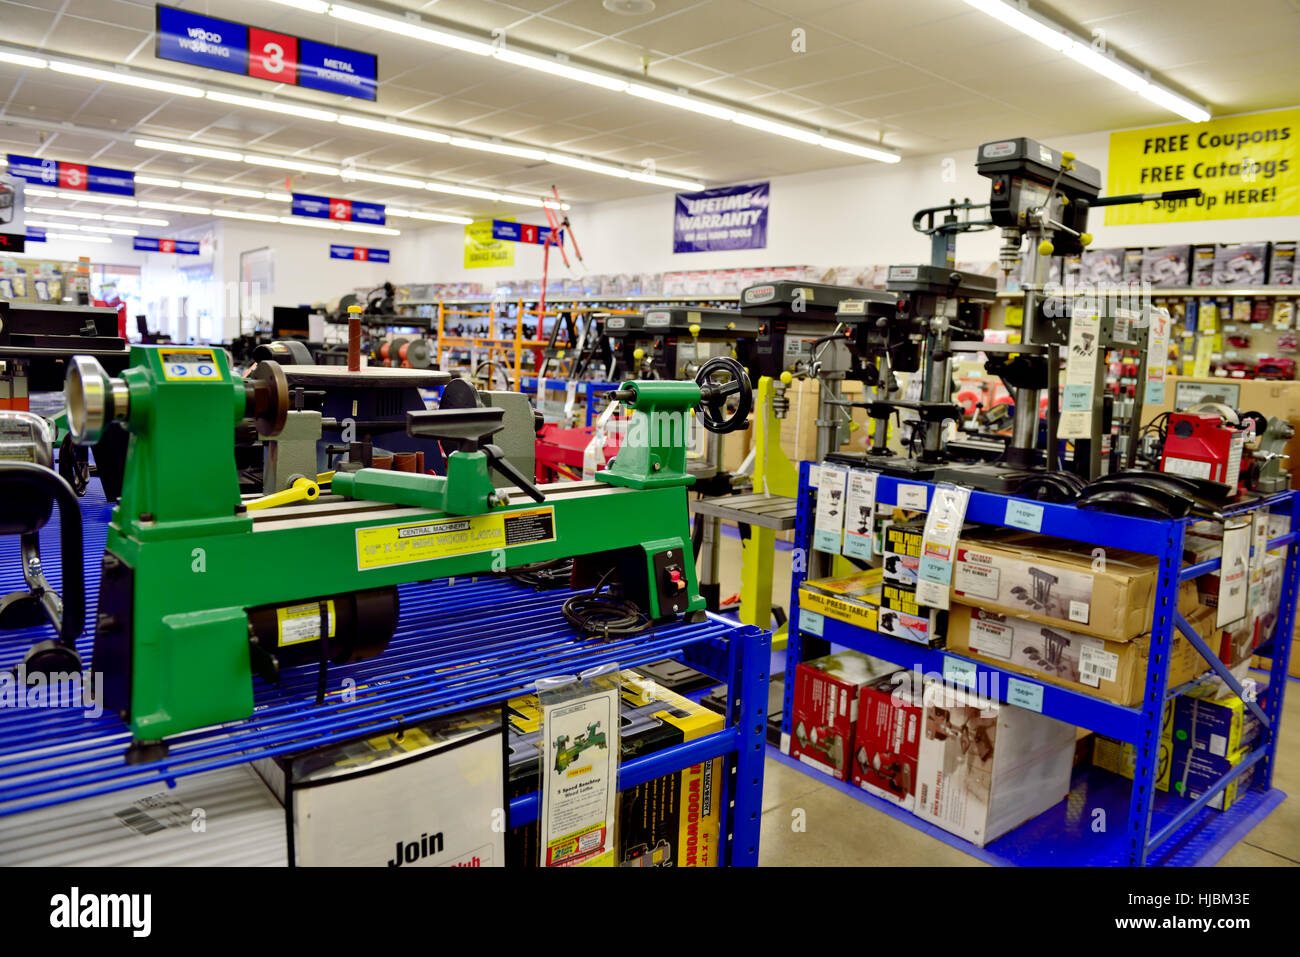 Shop Display Of Tools Machinery Inside Harbor Freight Tools Stock